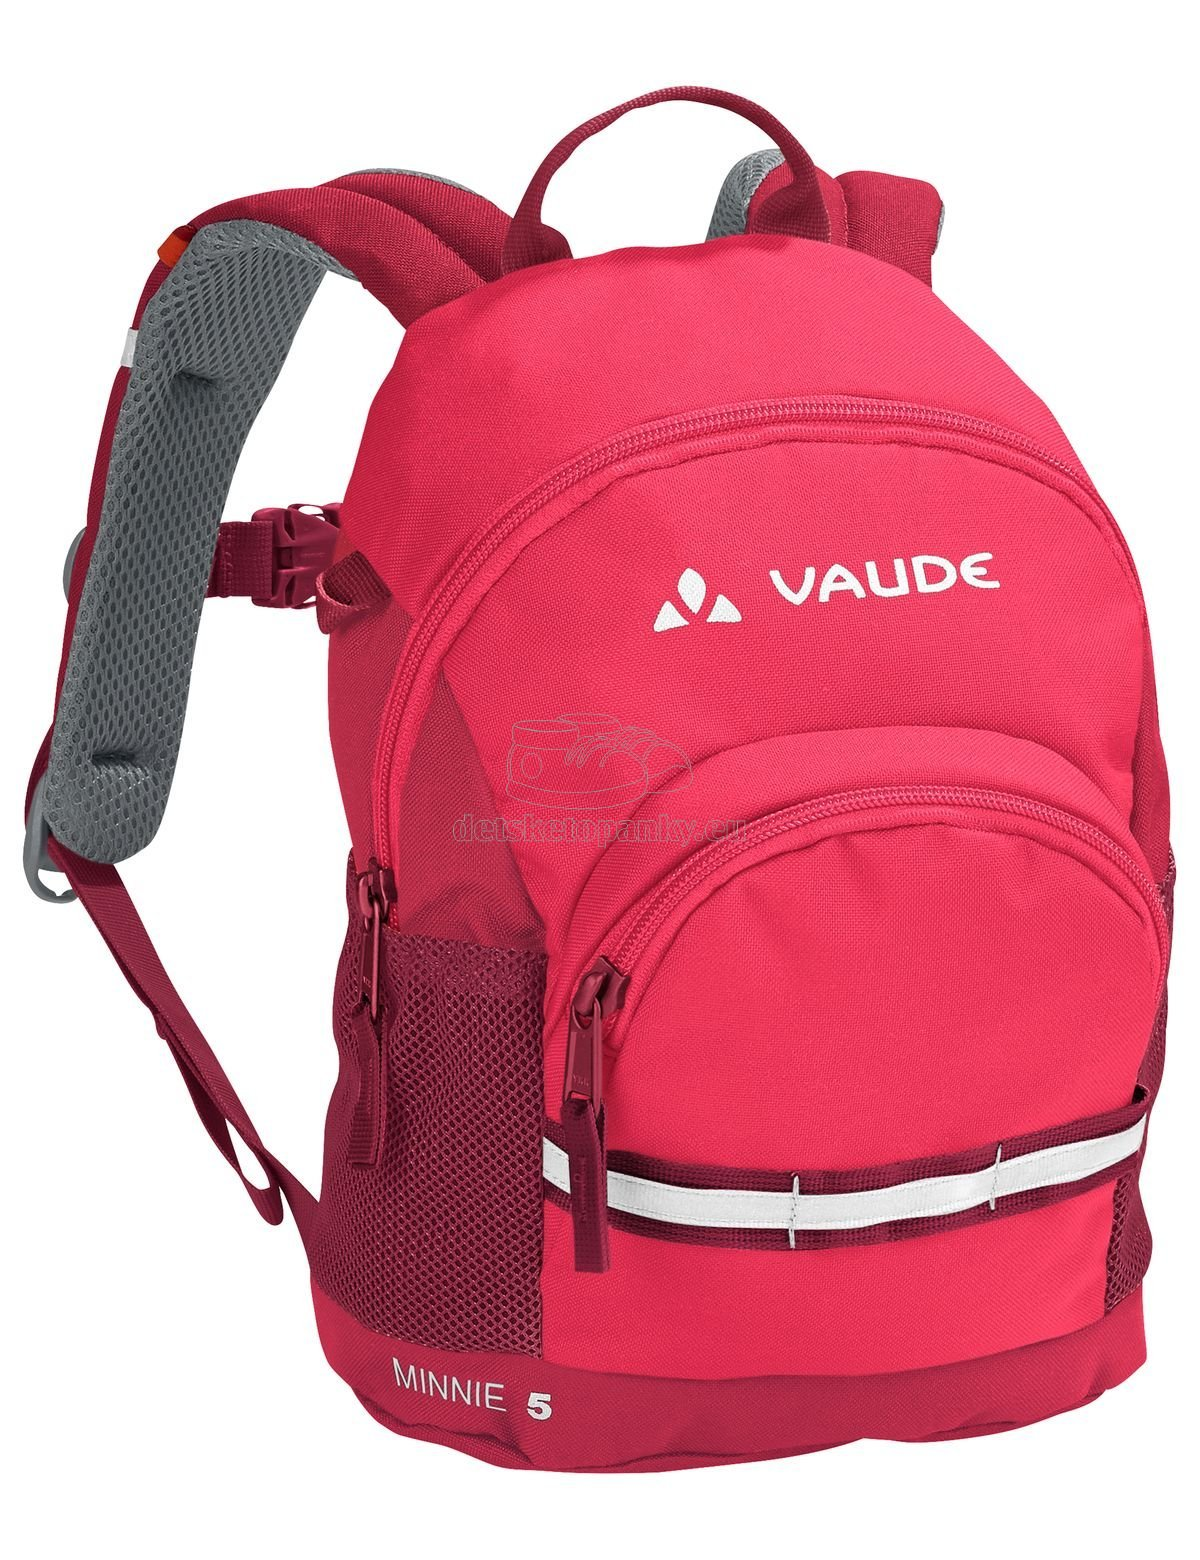 Vaude Minnie 5 bright pink